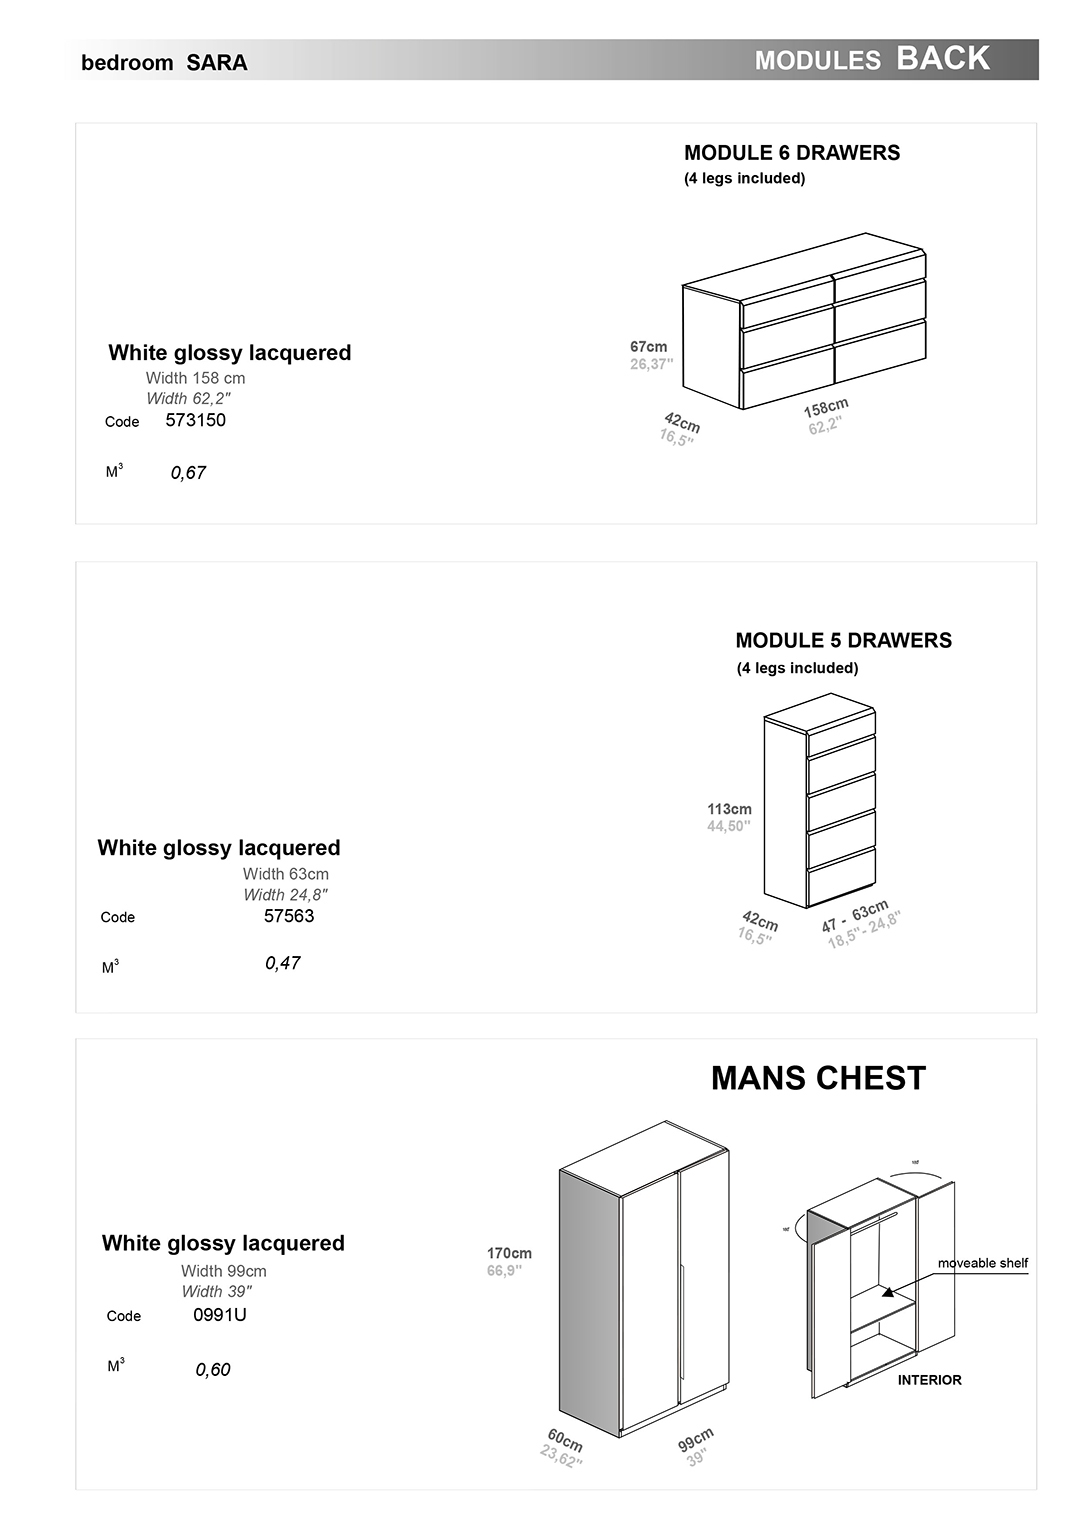 Bedroom Furniture Dimensions sara bedroom, modern bedrooms, bedroom furniture